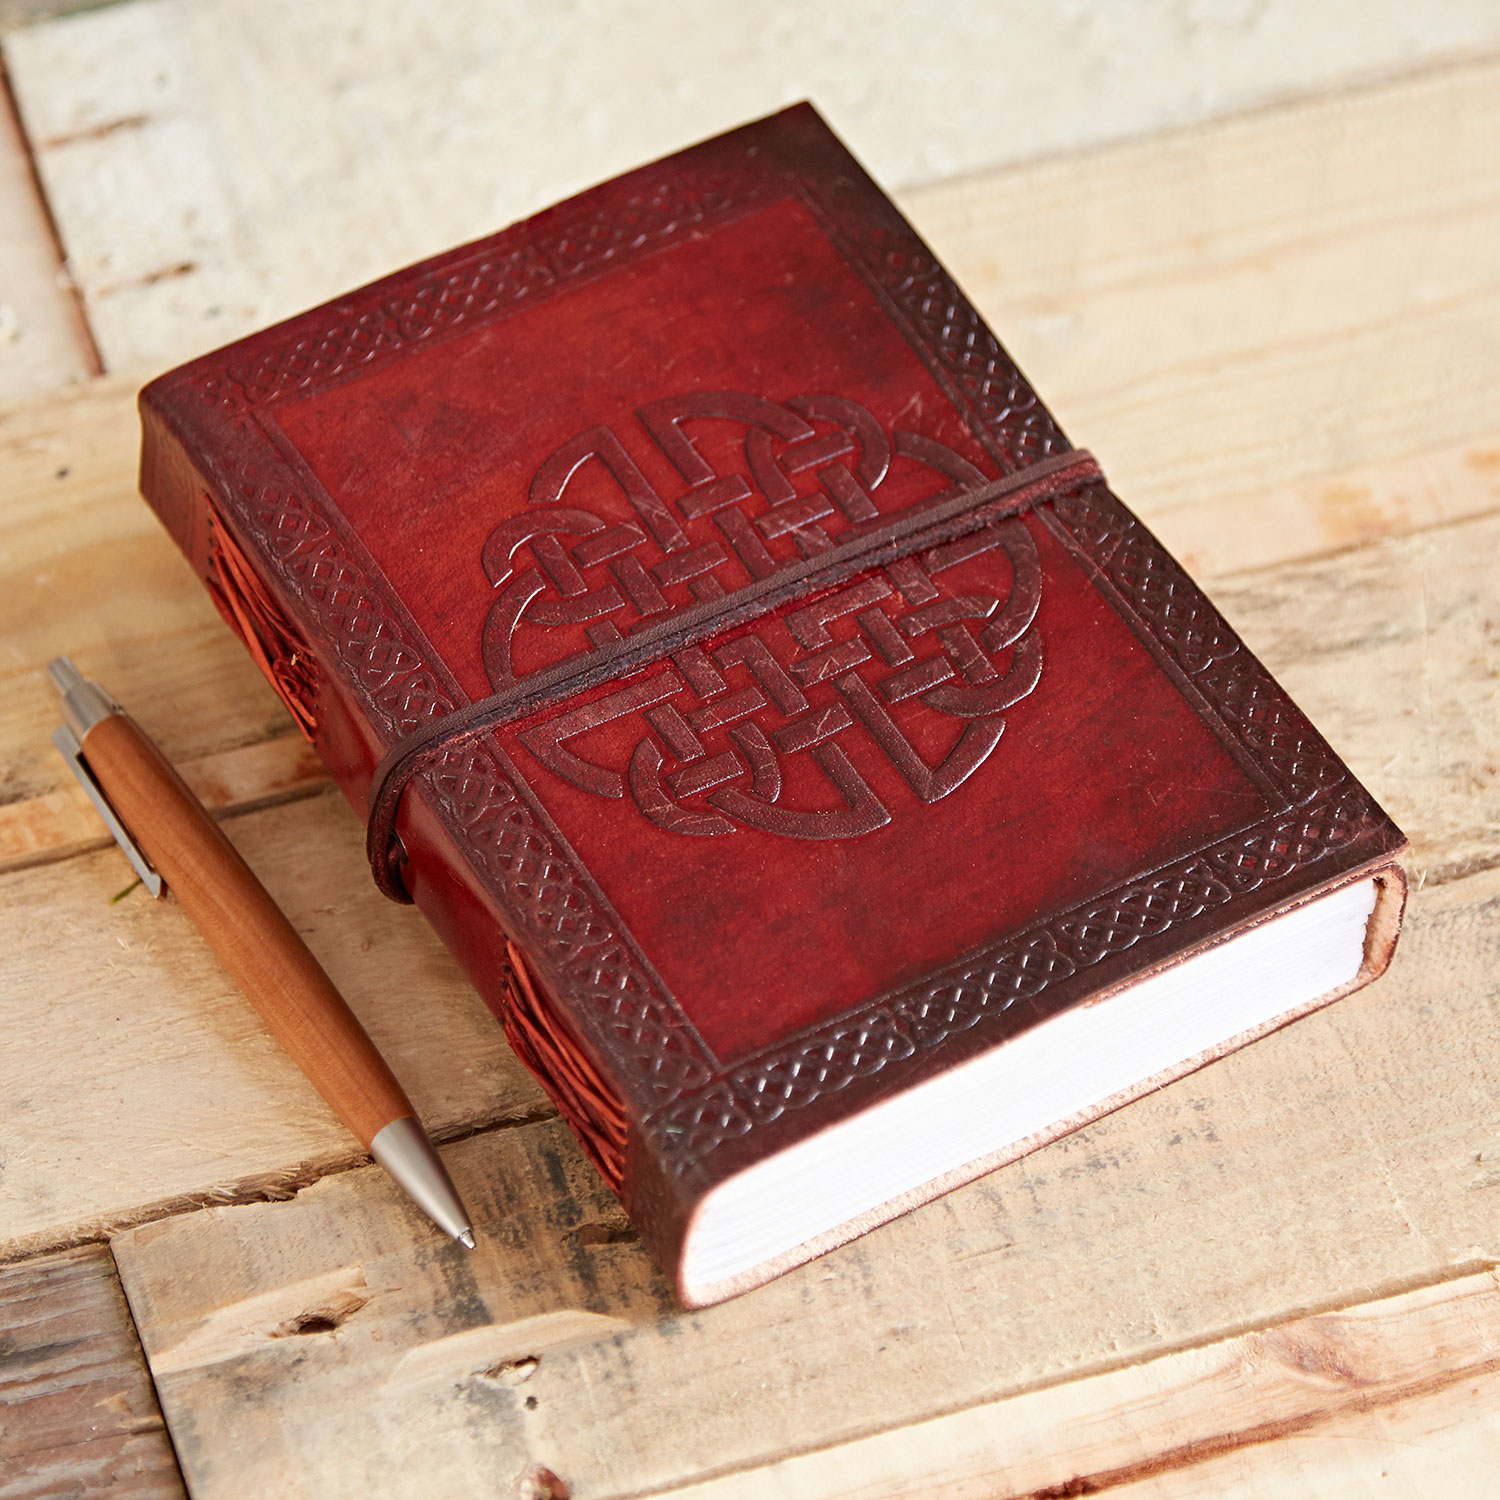 Celtic and Mishran Leather Journals